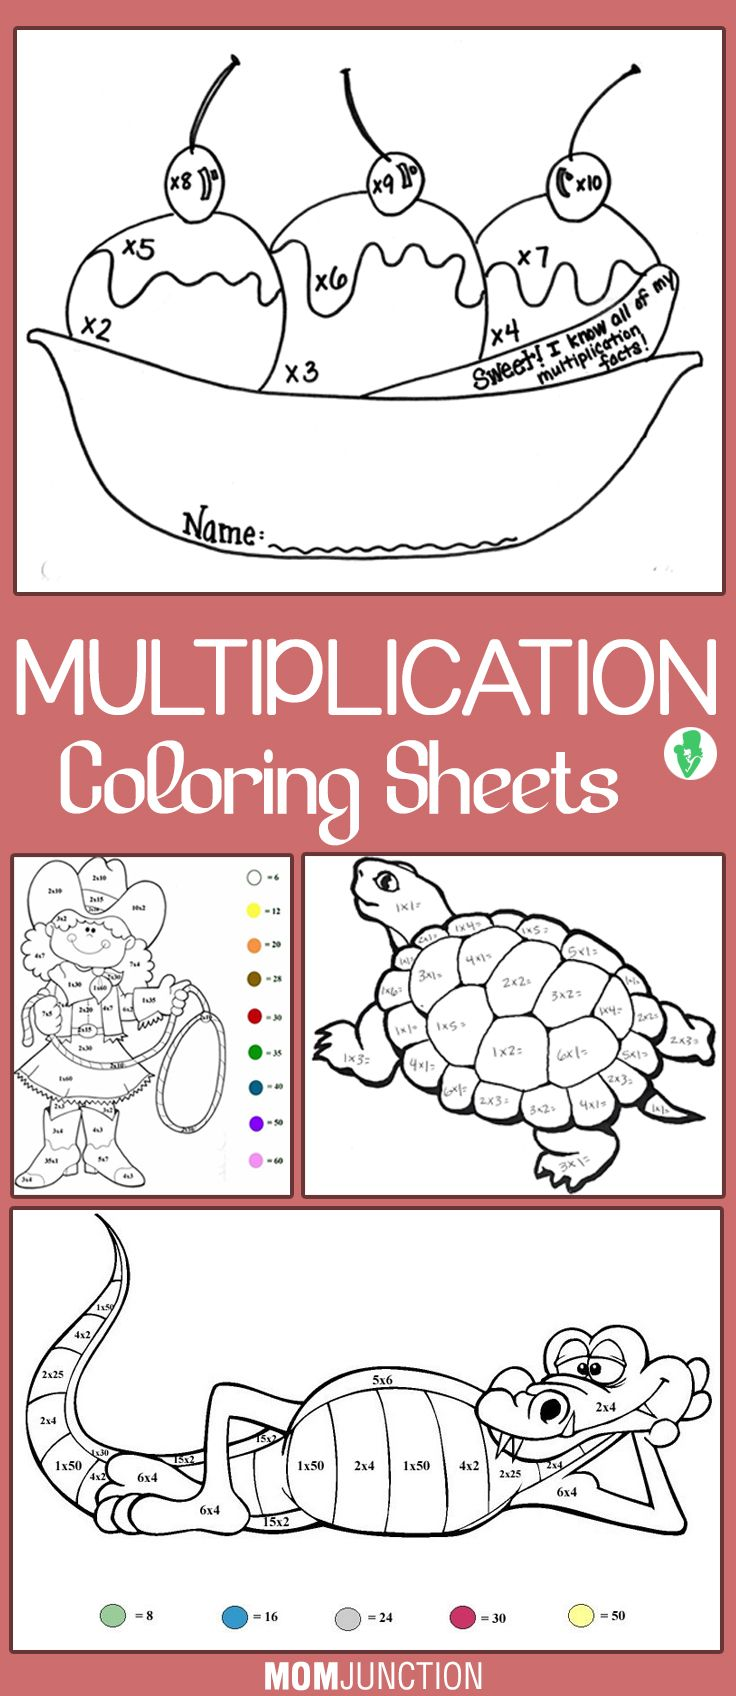 Top 10 Free Printable Multiplication Coloring Sheets Online Multiplication Math Color Sheets Coloring Sheets [ 1696 x 736 Pixel ]